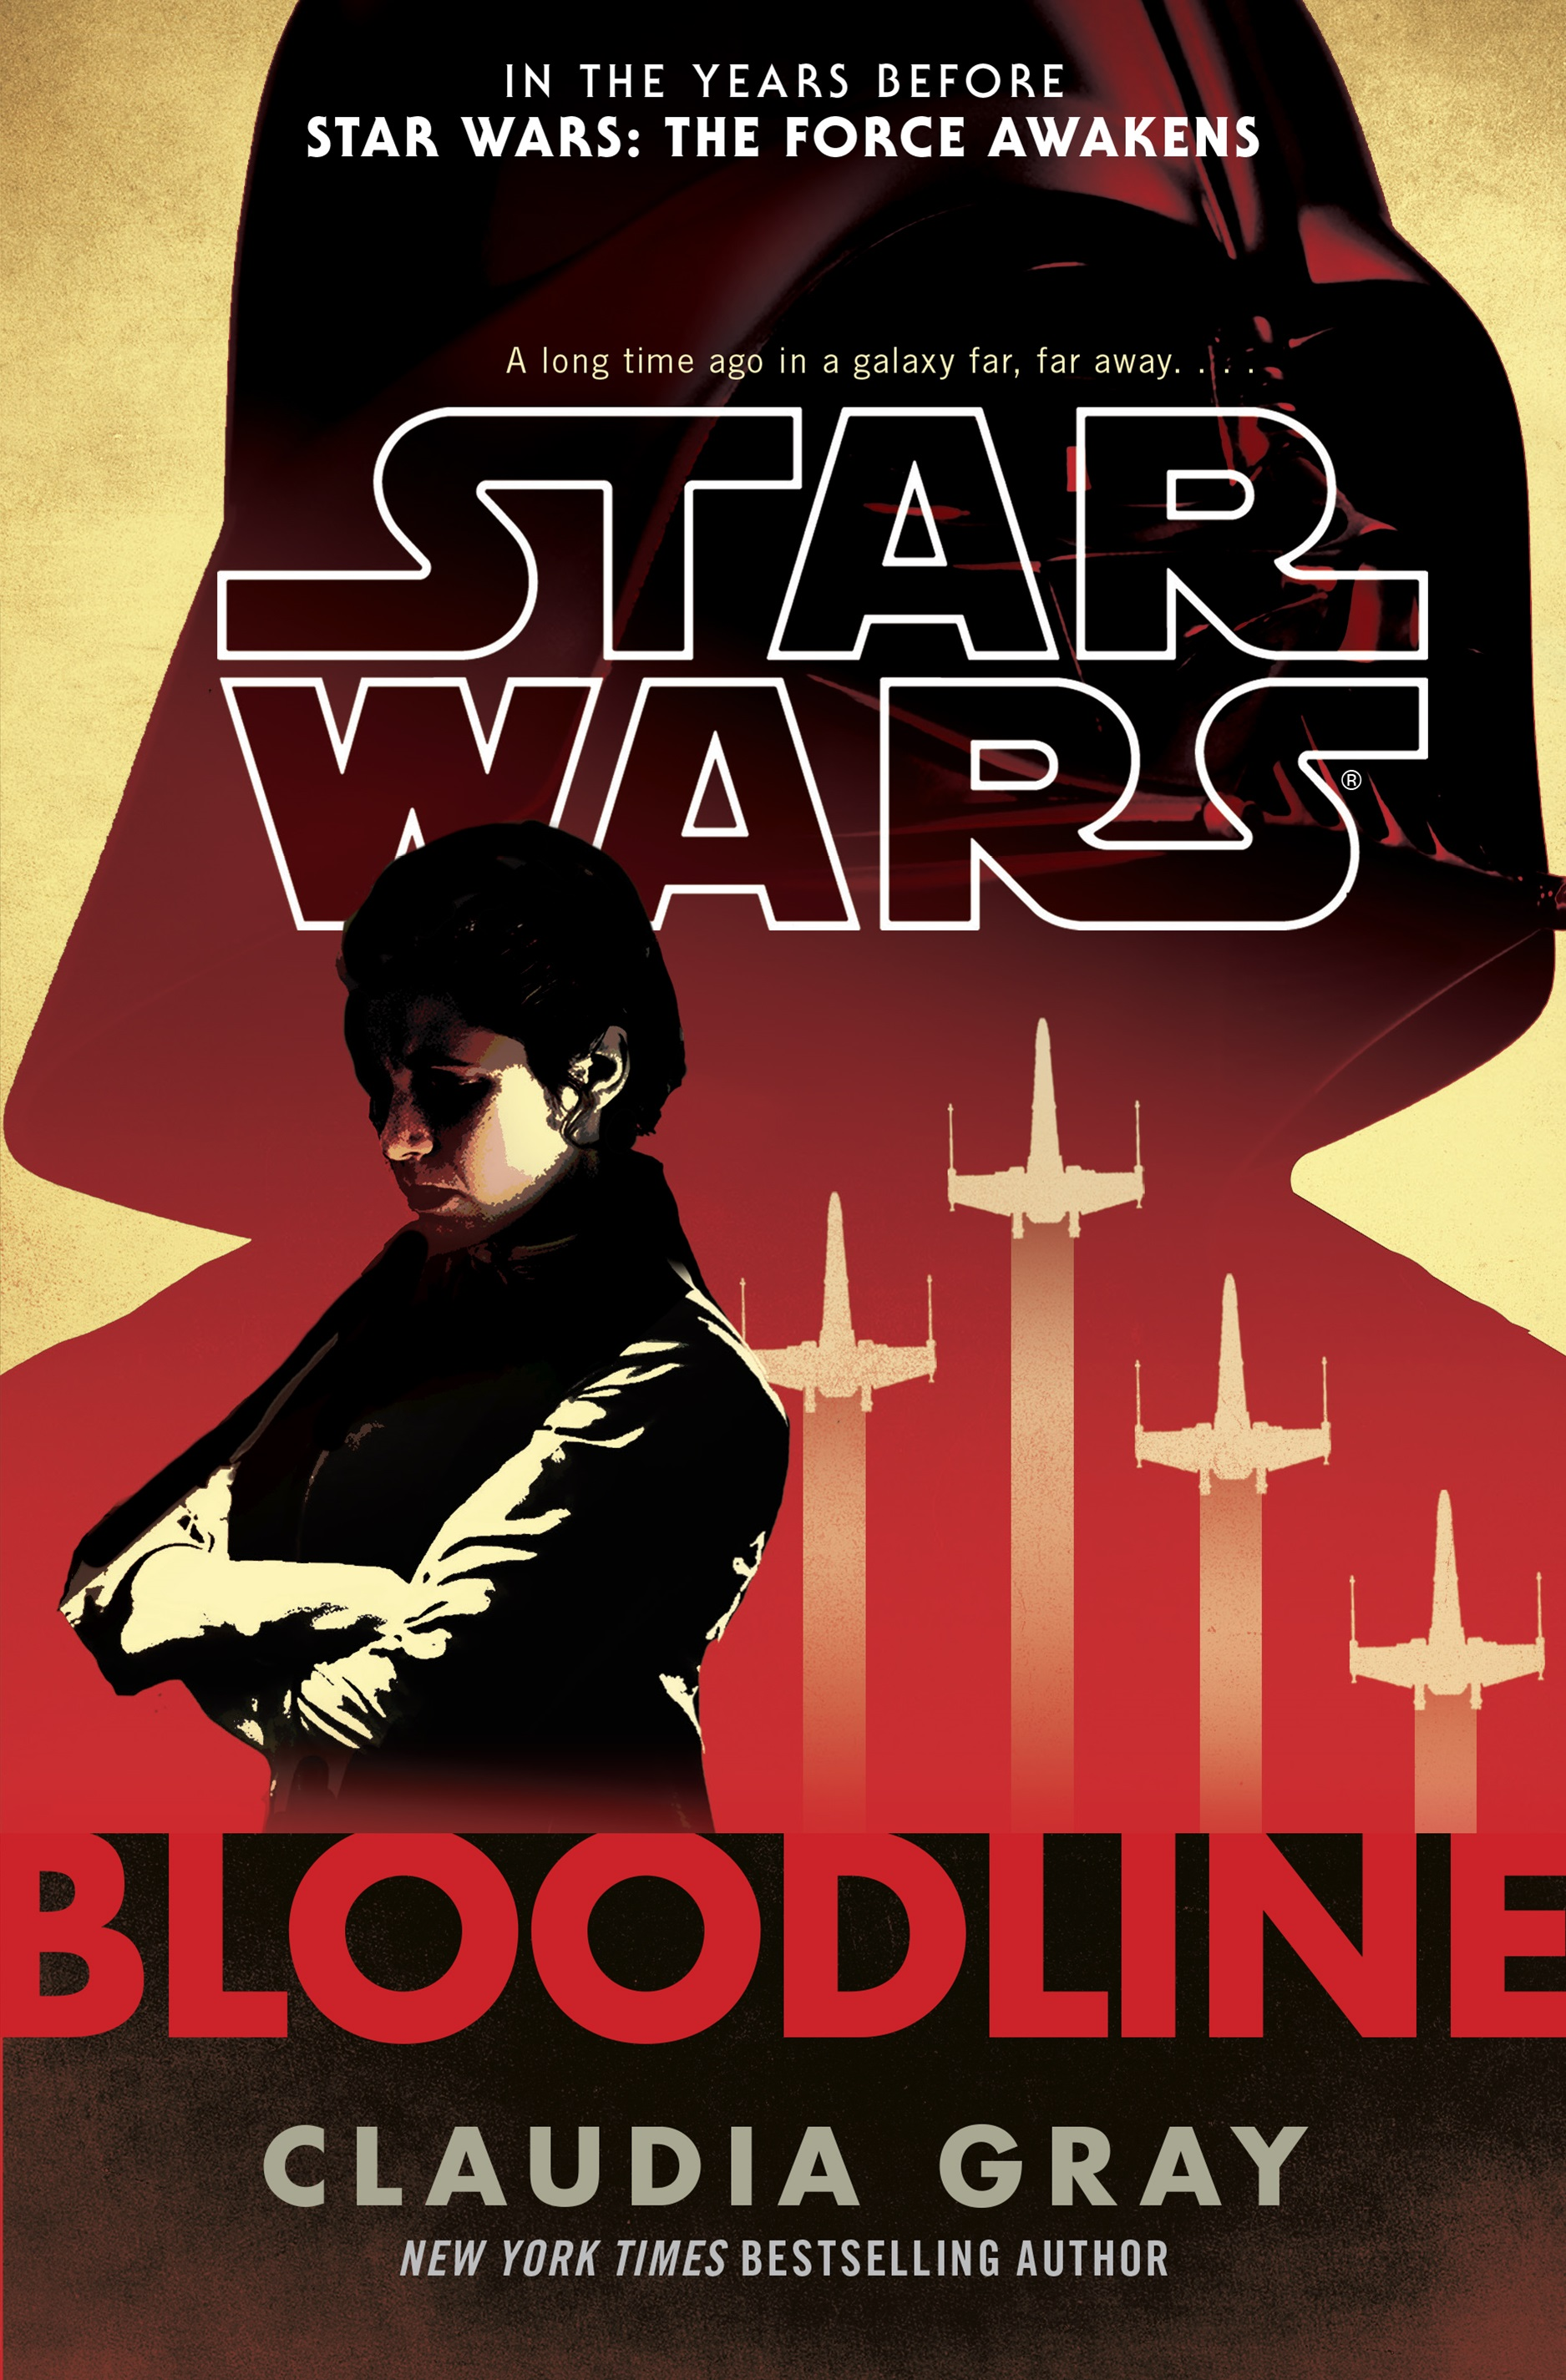 Bloodline (Star Wars) - Claudia Gray